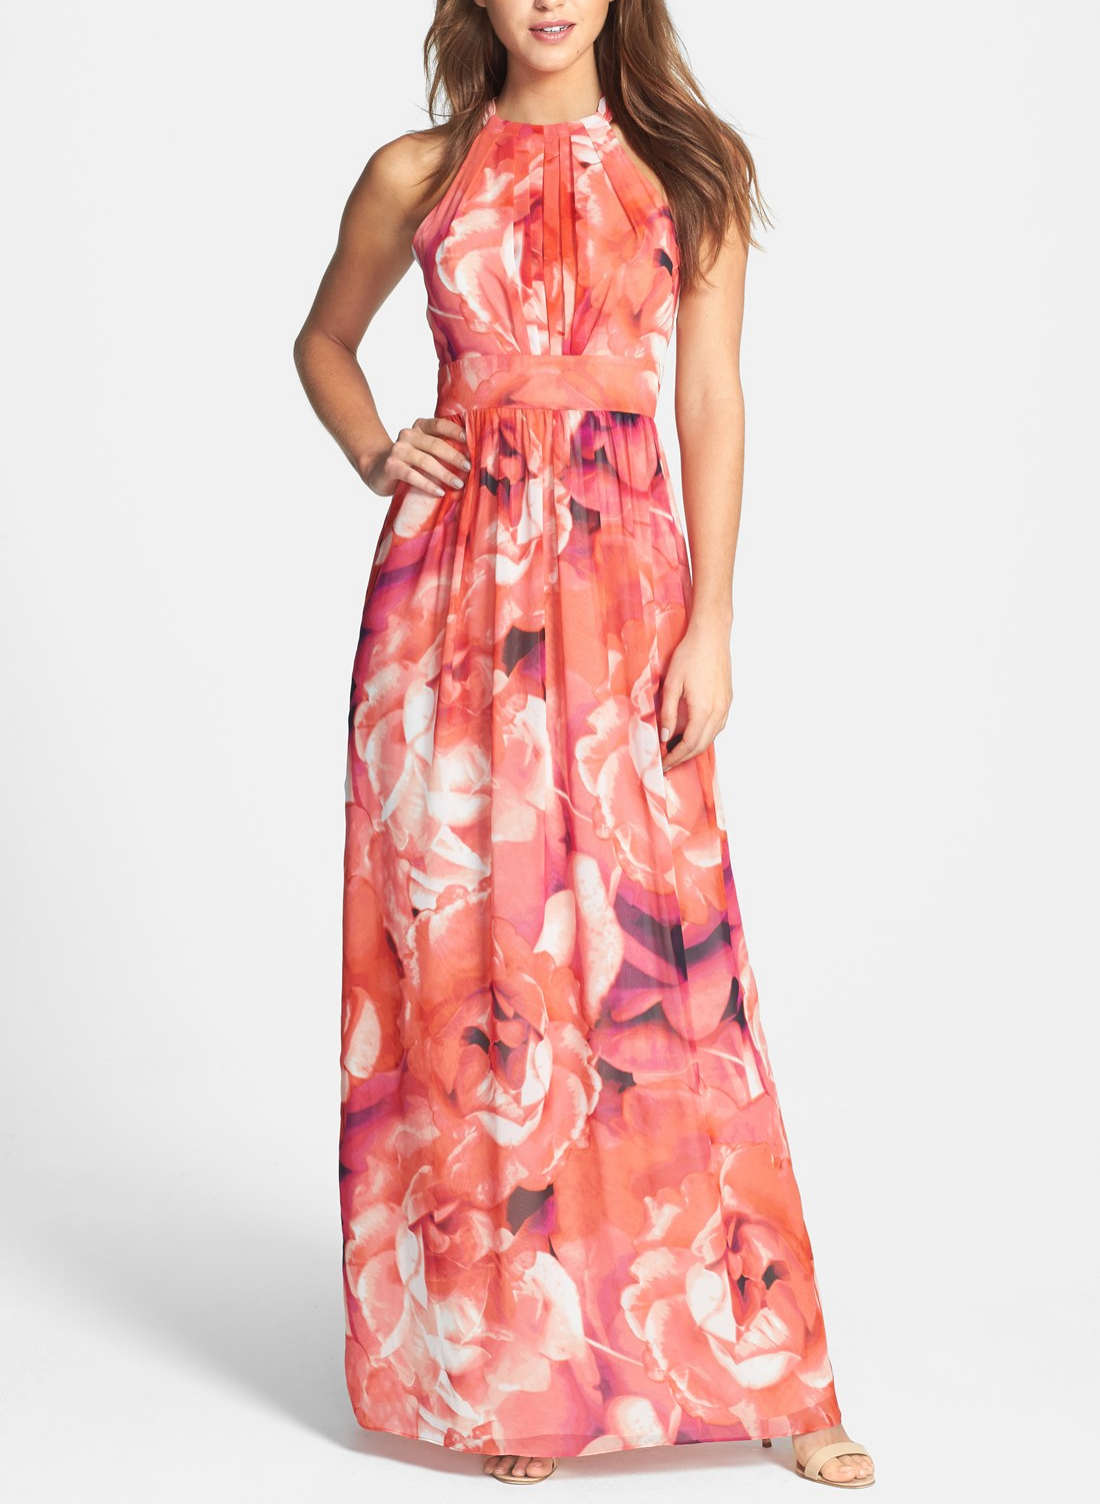 This flattering floral chiffon dress cinches at the waist to